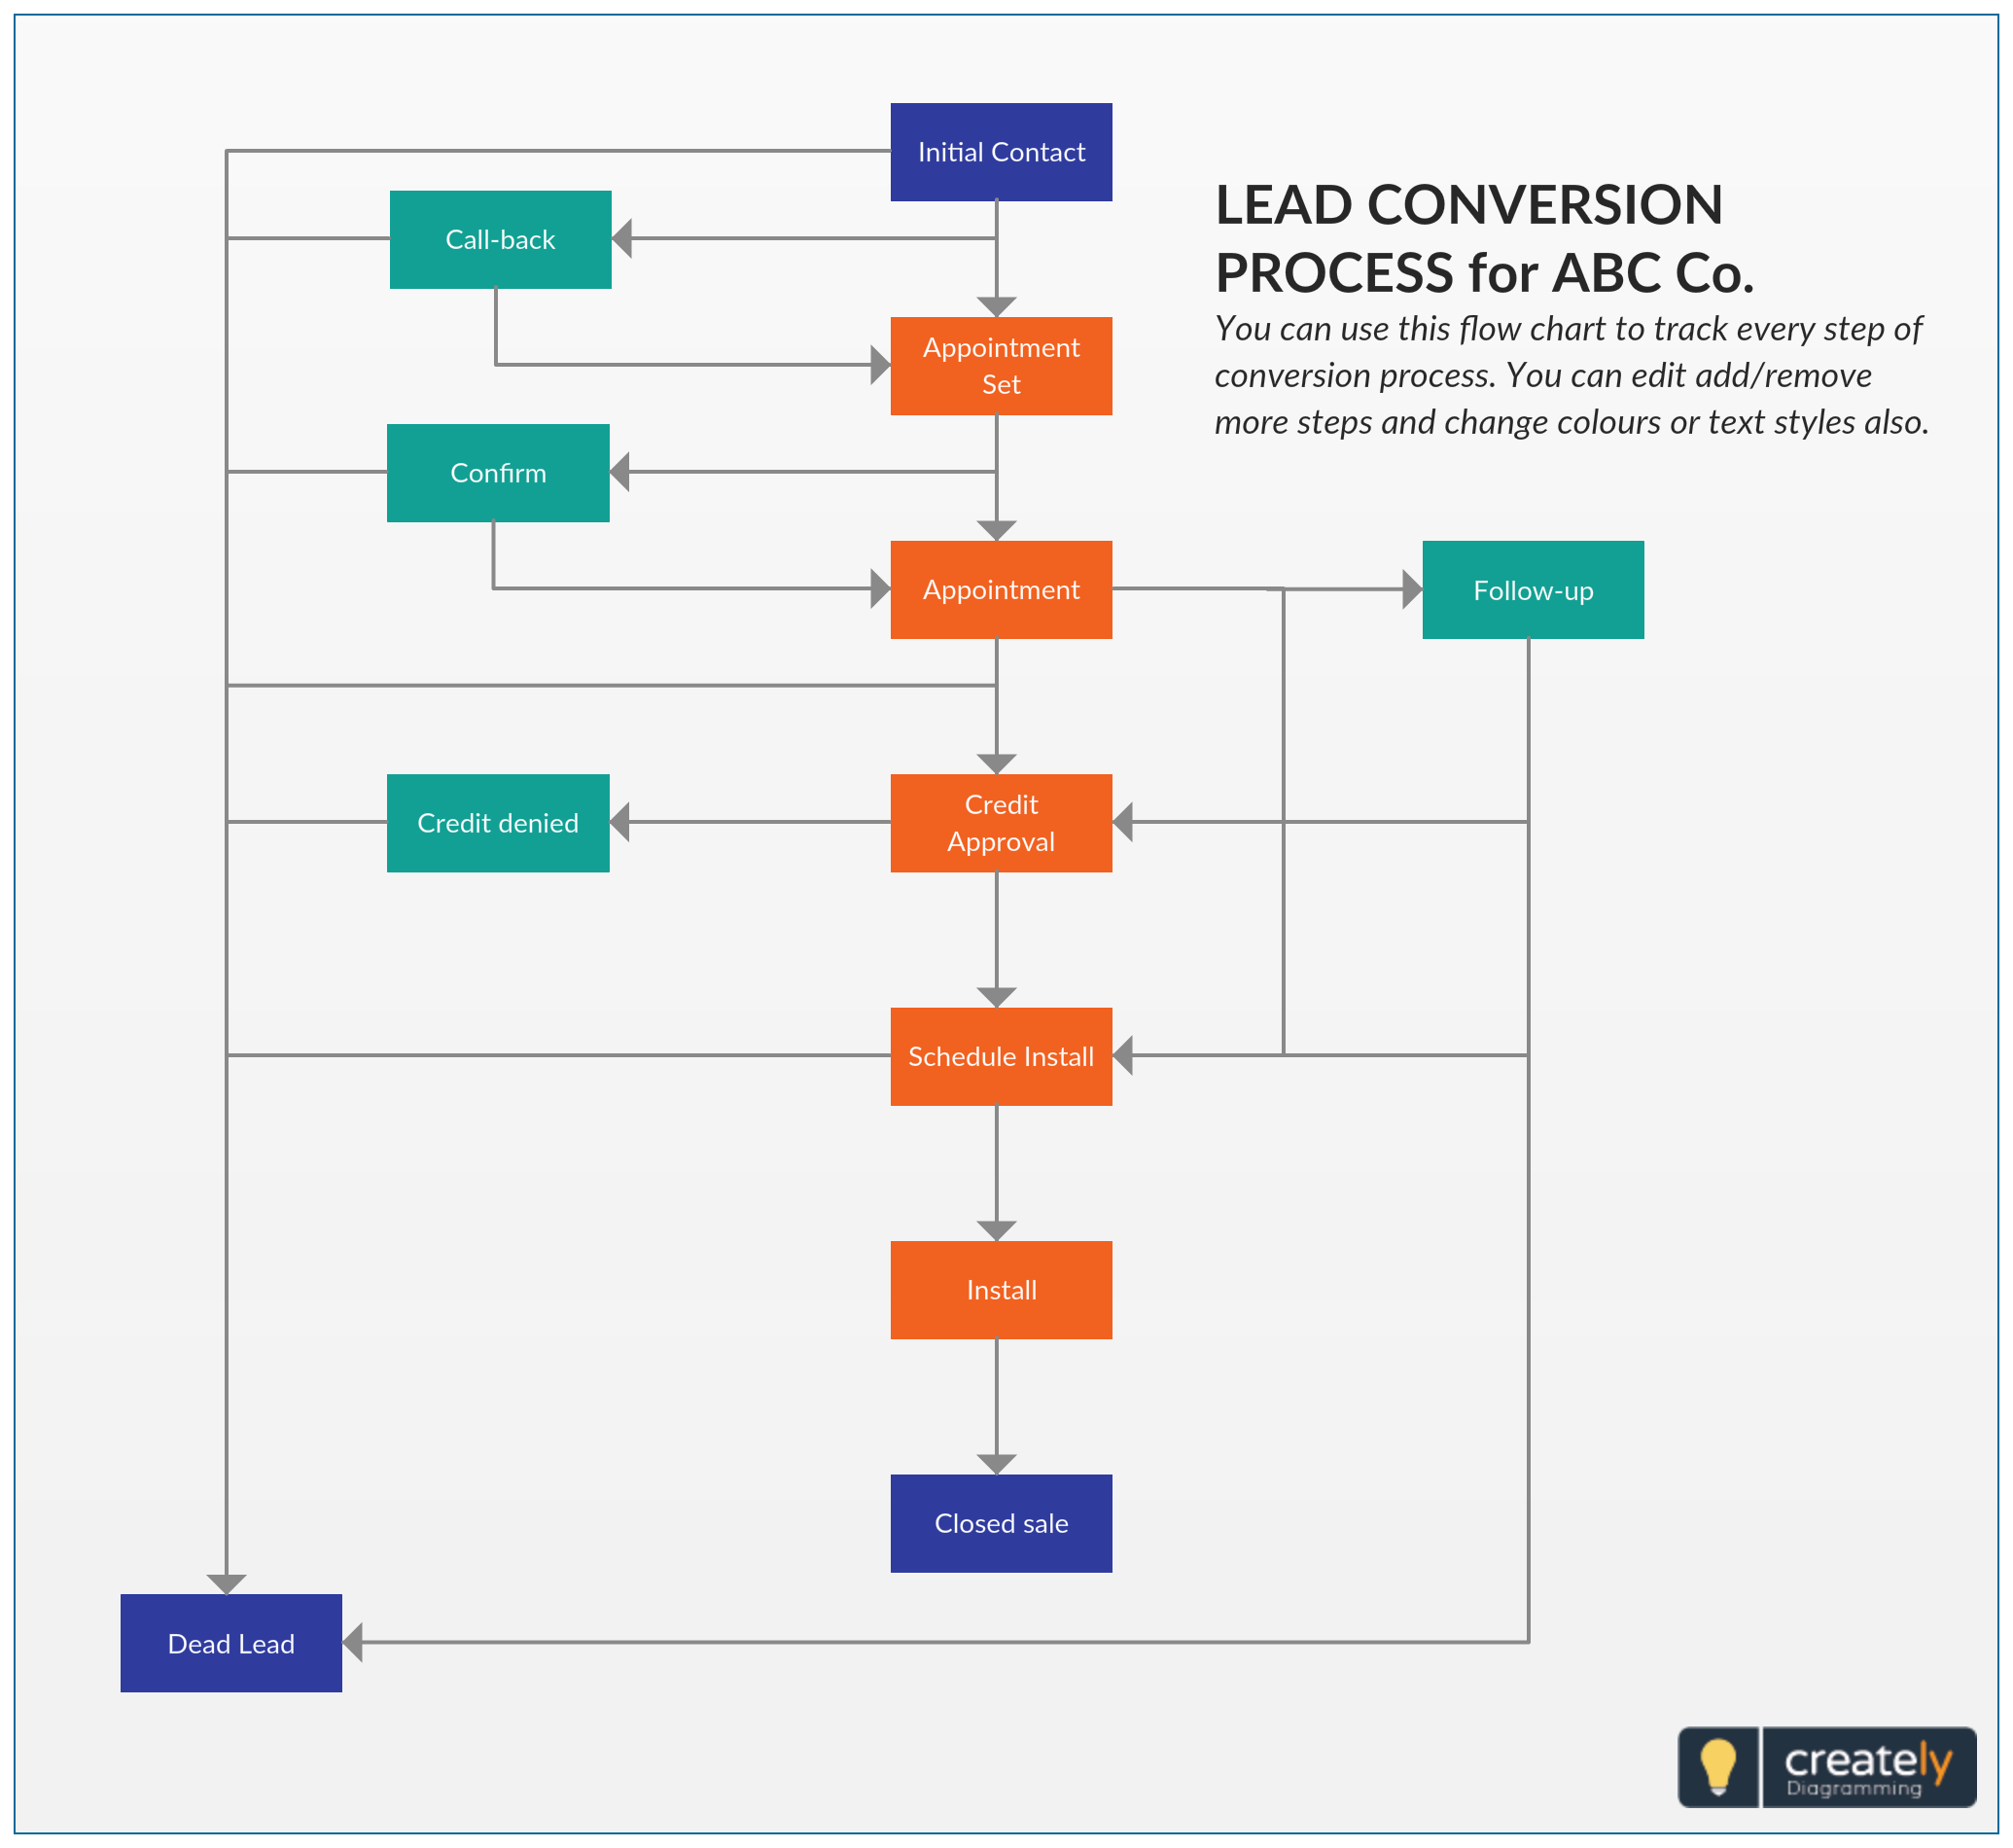 Lead Conversion Lead Conversion Is The Process Of Converting A Lead Into An Account Contact And Or Opportunity Thi Flow Chart Lead Generation Sales Process